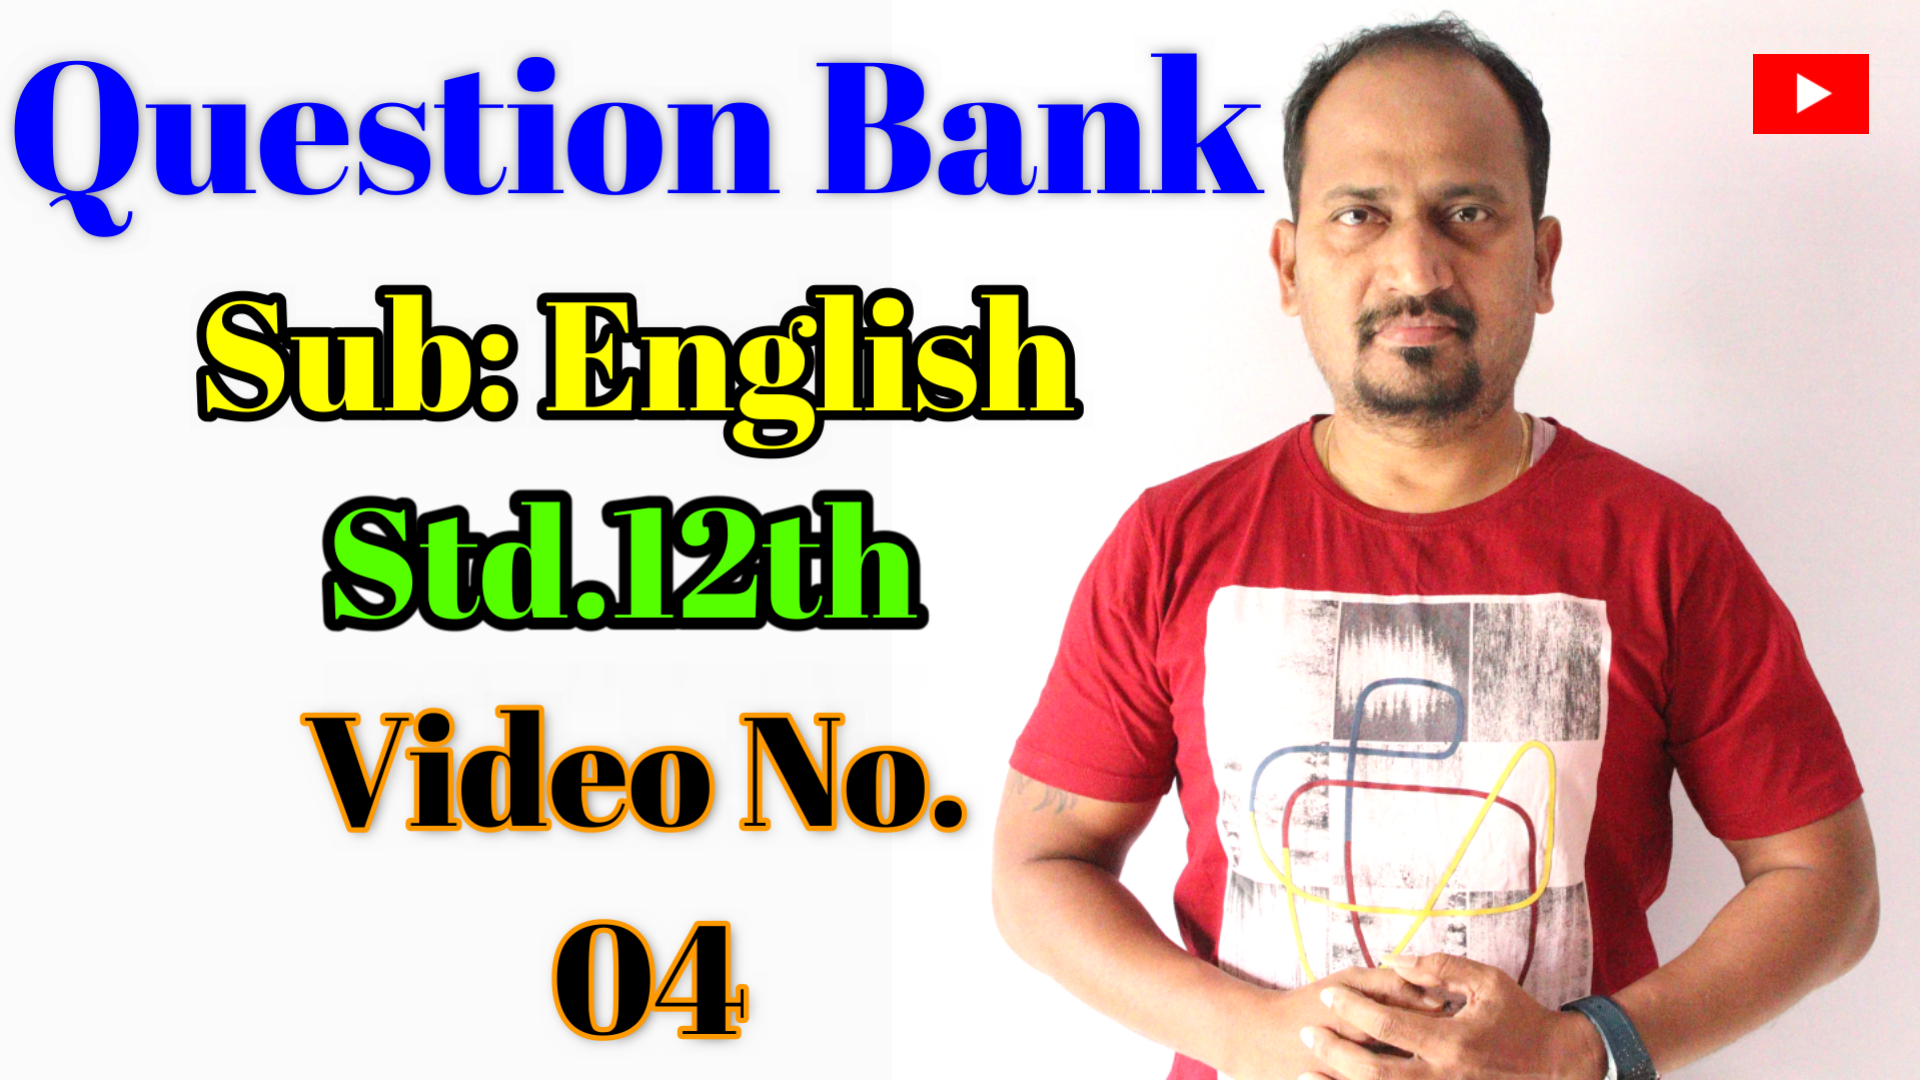 Question Bank : Std.12th Video No.04